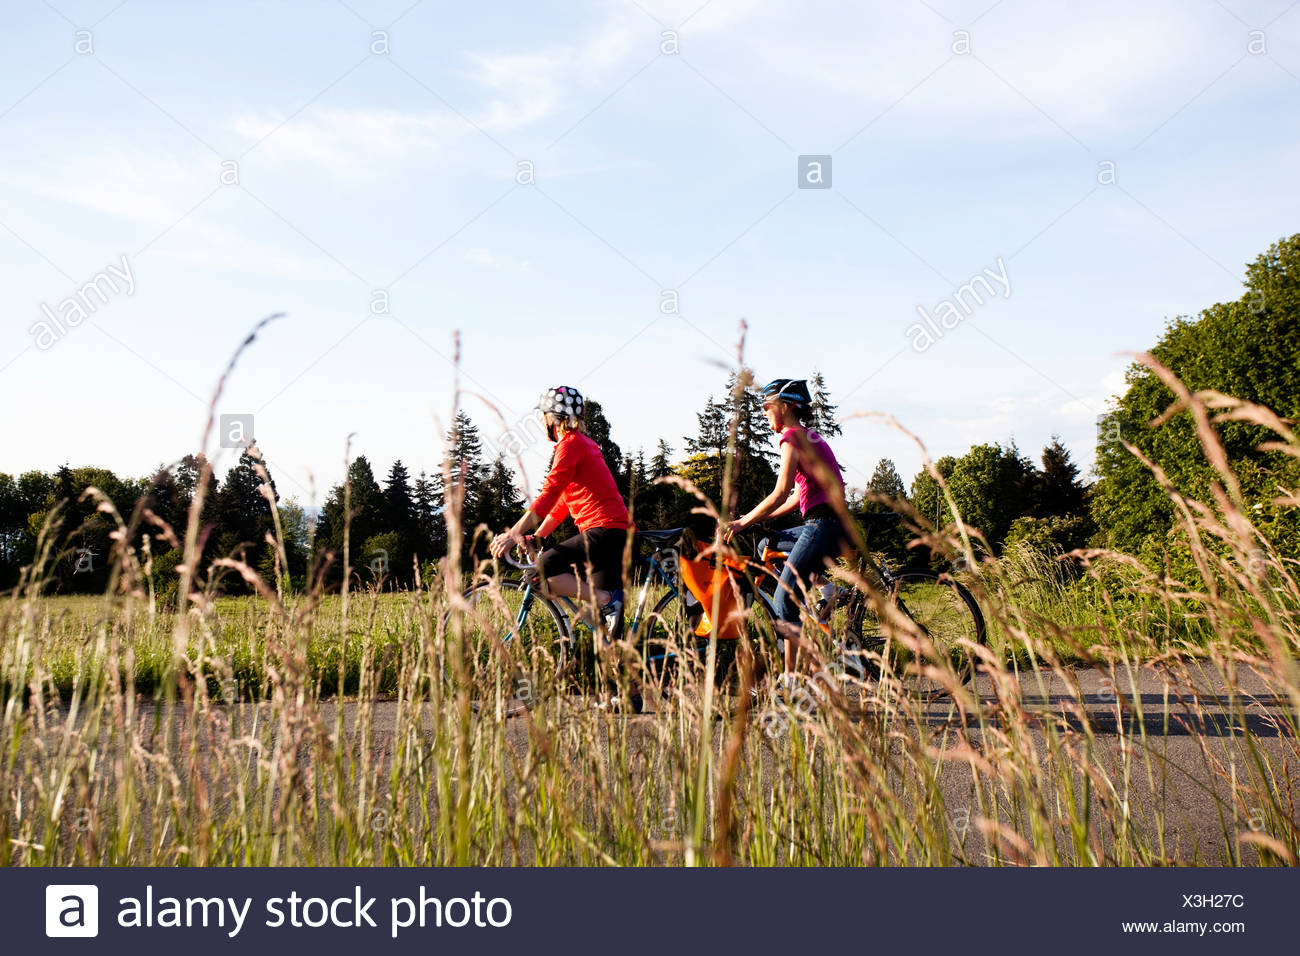 Two young women enjoy ther view on the ride home from work through a park. - Stock Image